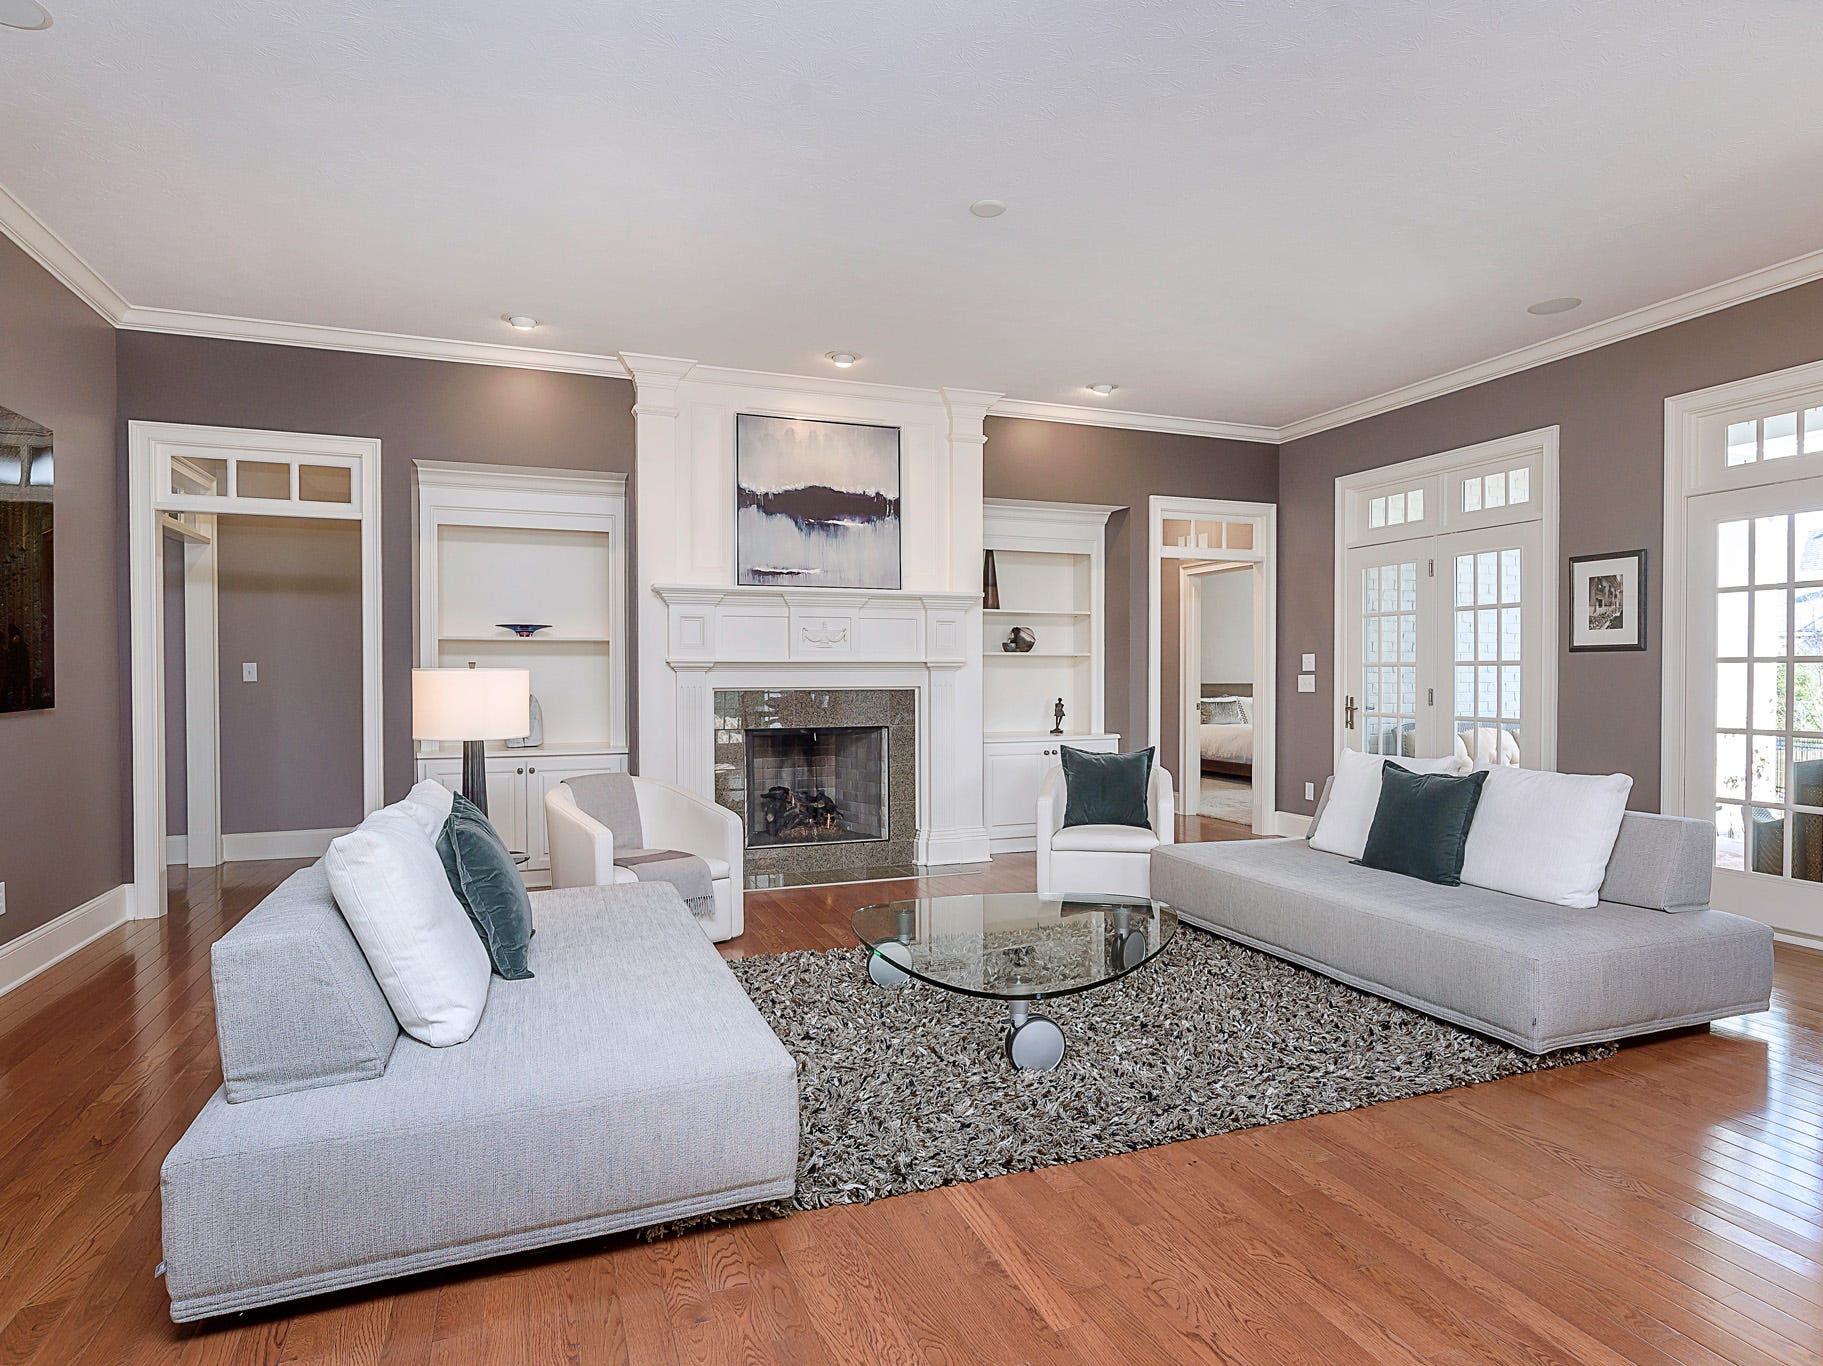 A view of the family room with access to patio. The home features an open concept floor plan.